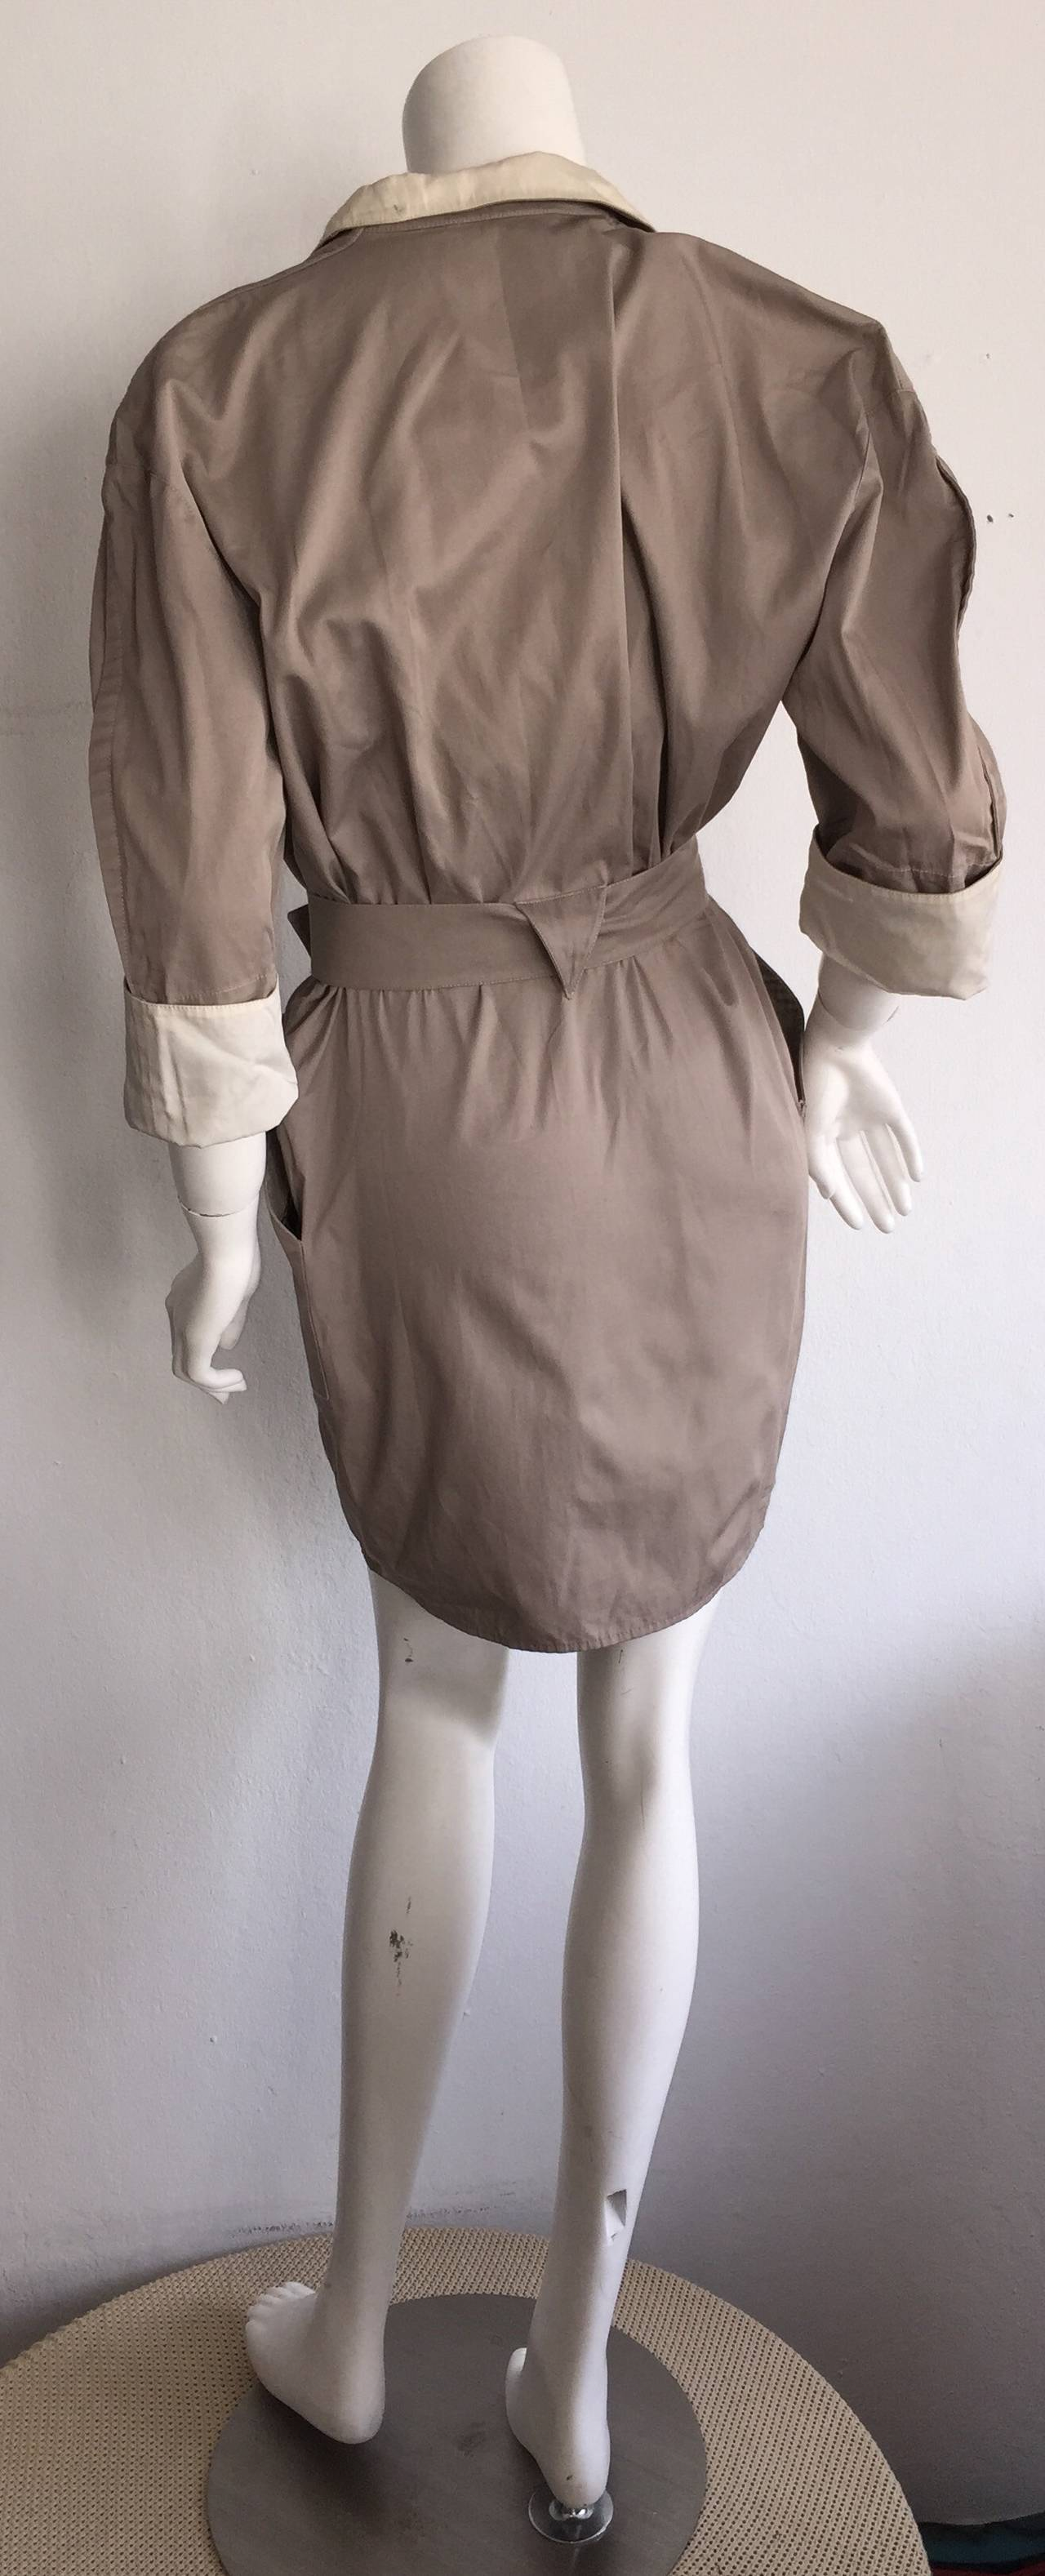 Sexy Vintage Thierry Mugler Avant Garde Belted Khaki Safari Shirt Dress 4